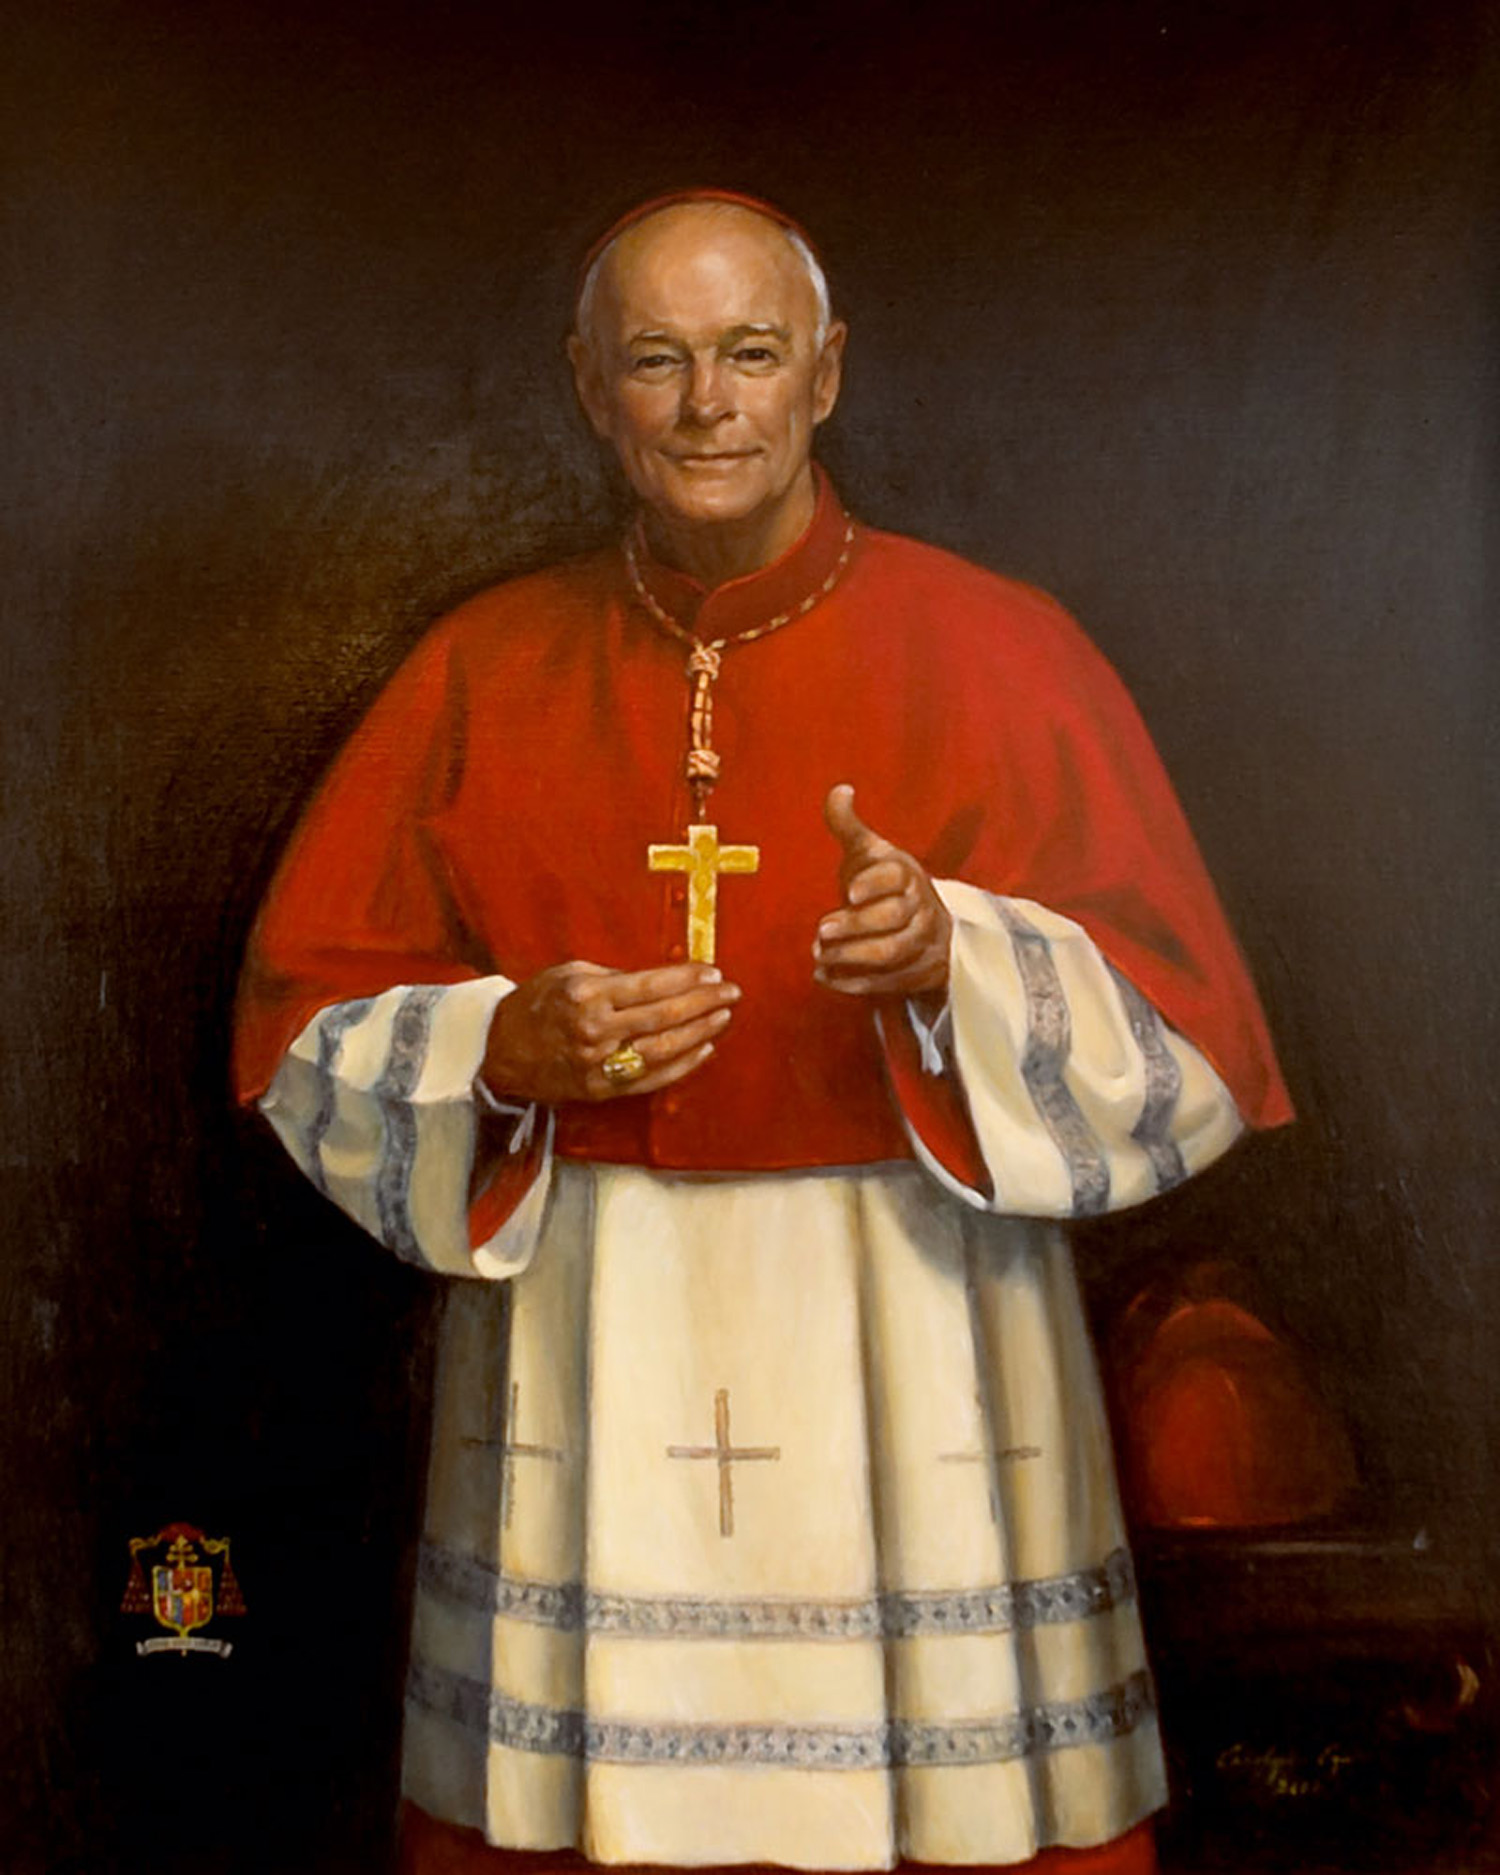 "His Eminence Cardinal Egan, 36"" x 42"". Commission"